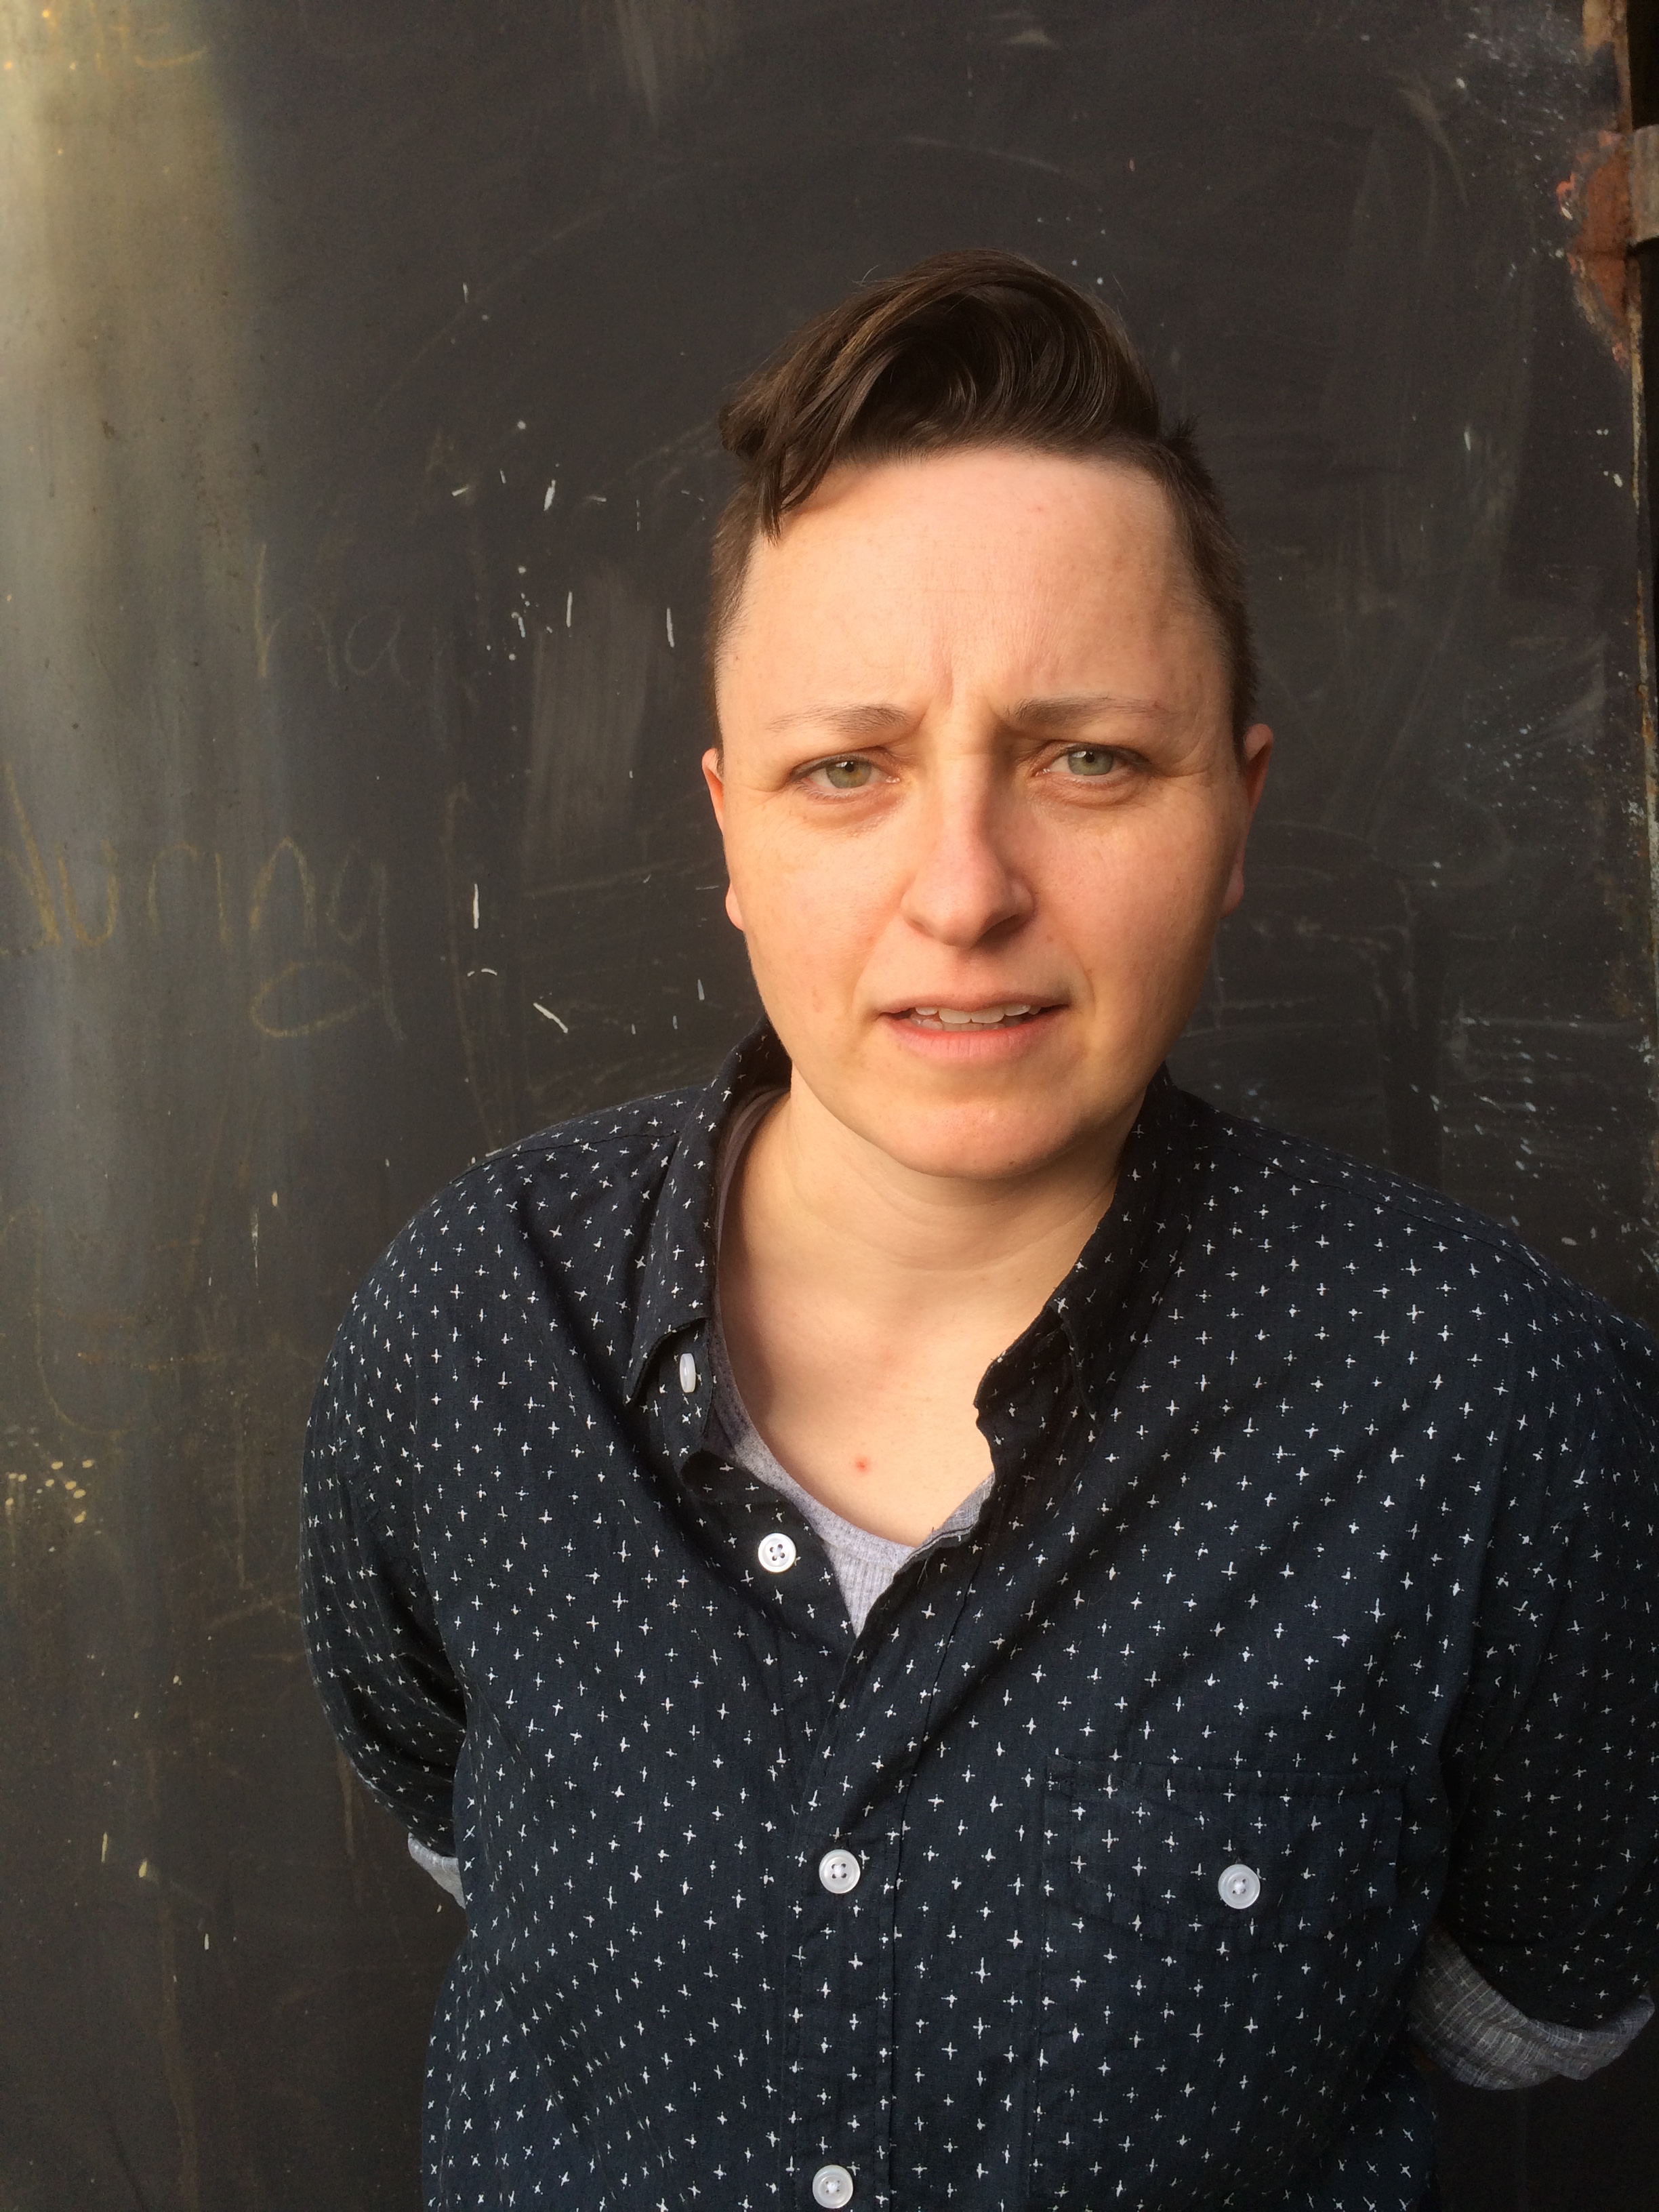 - Jenny Johnson is the author of In Full Velvet, published by Sarabande Books in 2017. Her honors include a 2015 Whiting Award and a 2016-17 Hodder Fellowship at Princeton University. She was recently named one of the